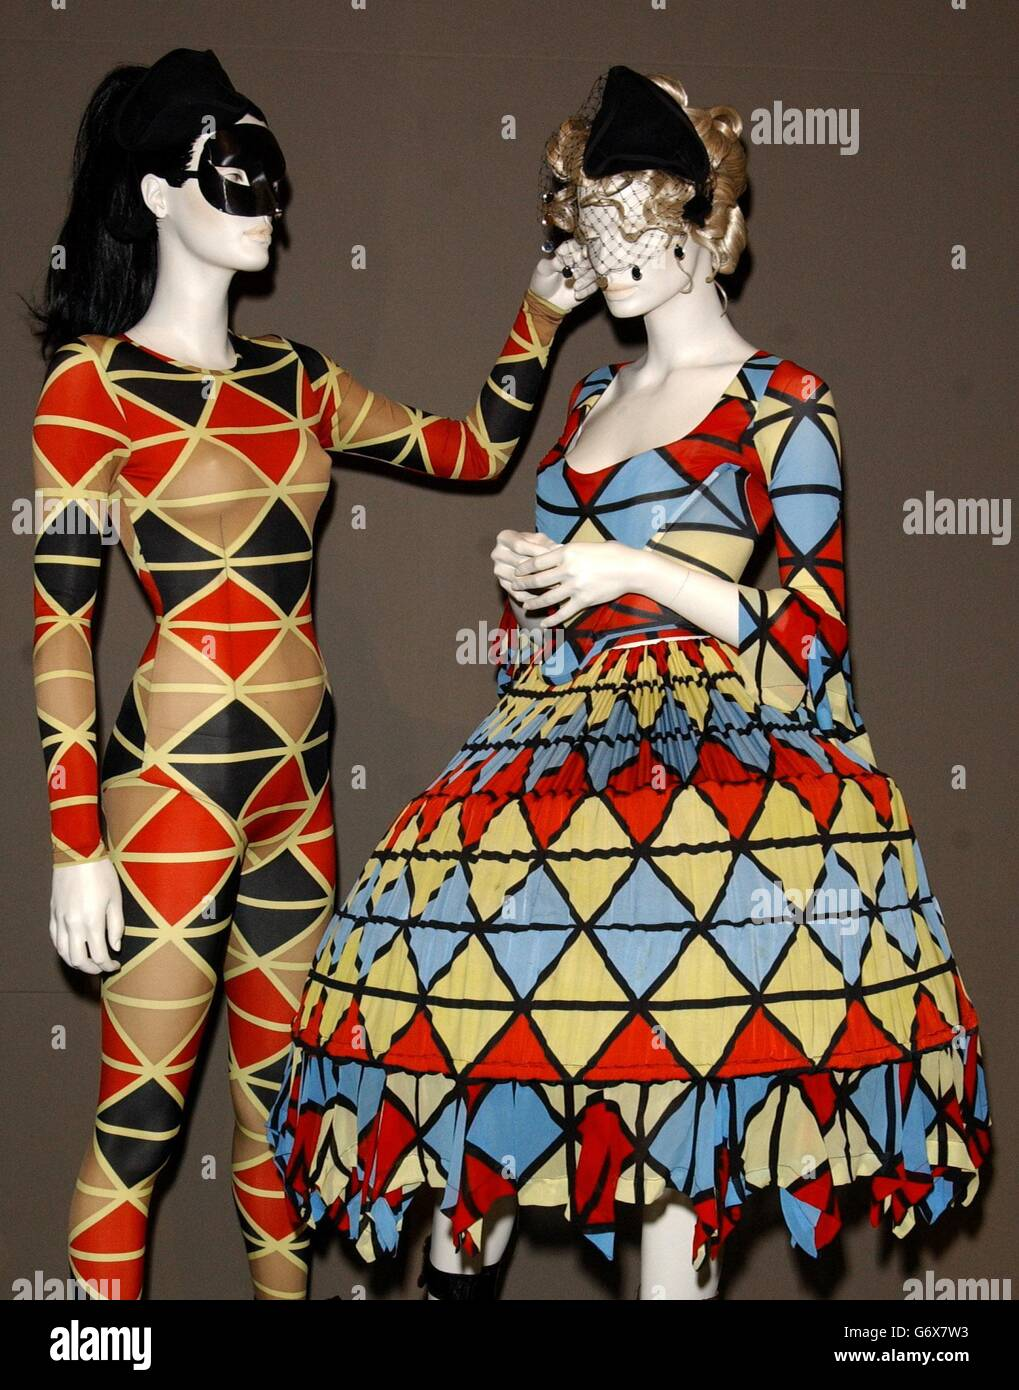 Vivienne Westwood Exhibition Stock Photo Alamy